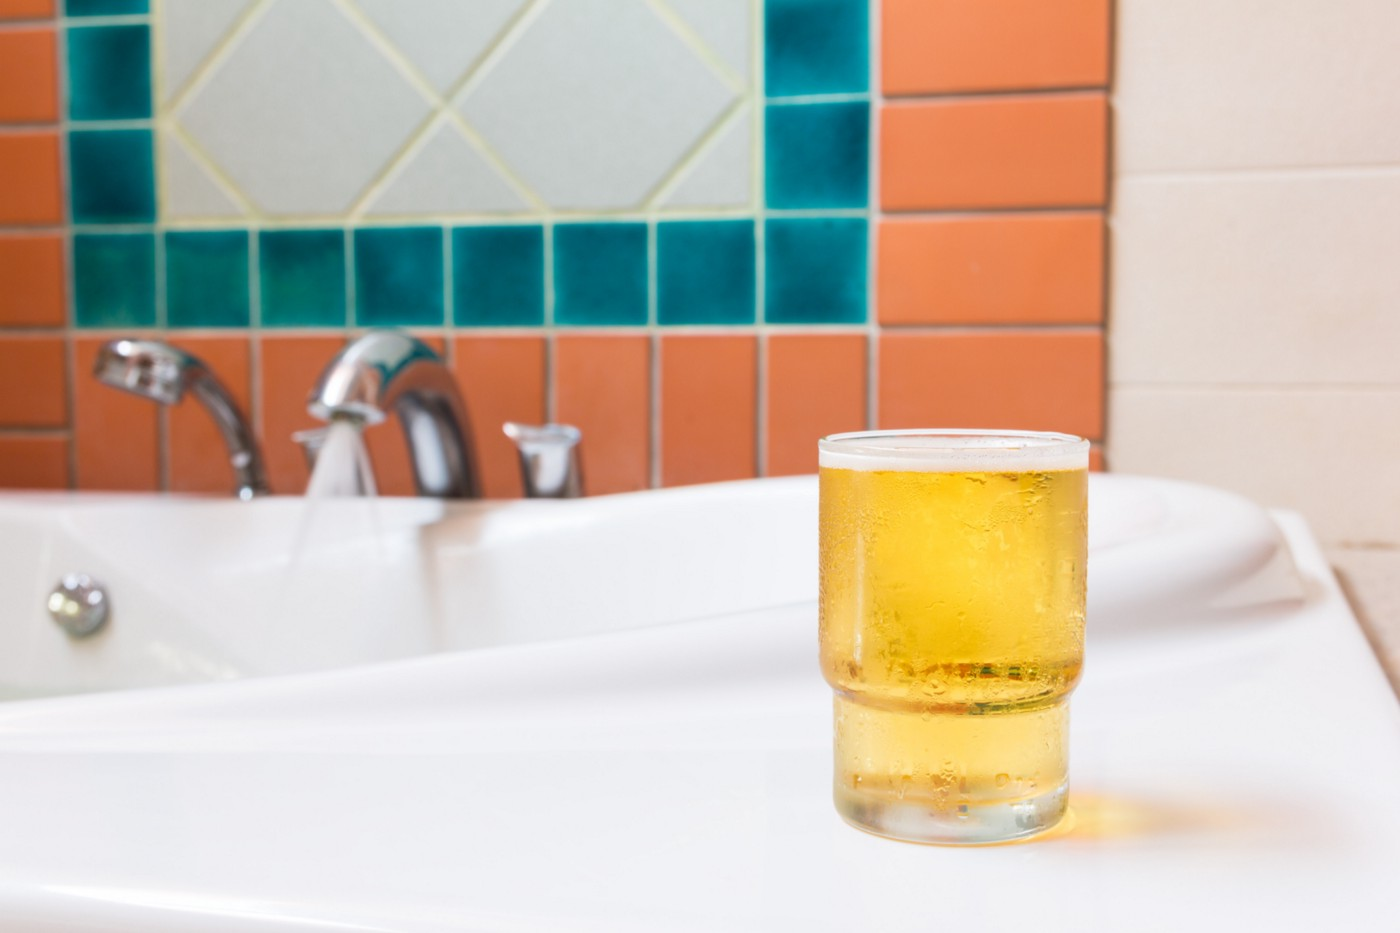 A glass of beer placed on a surface near a running tap.